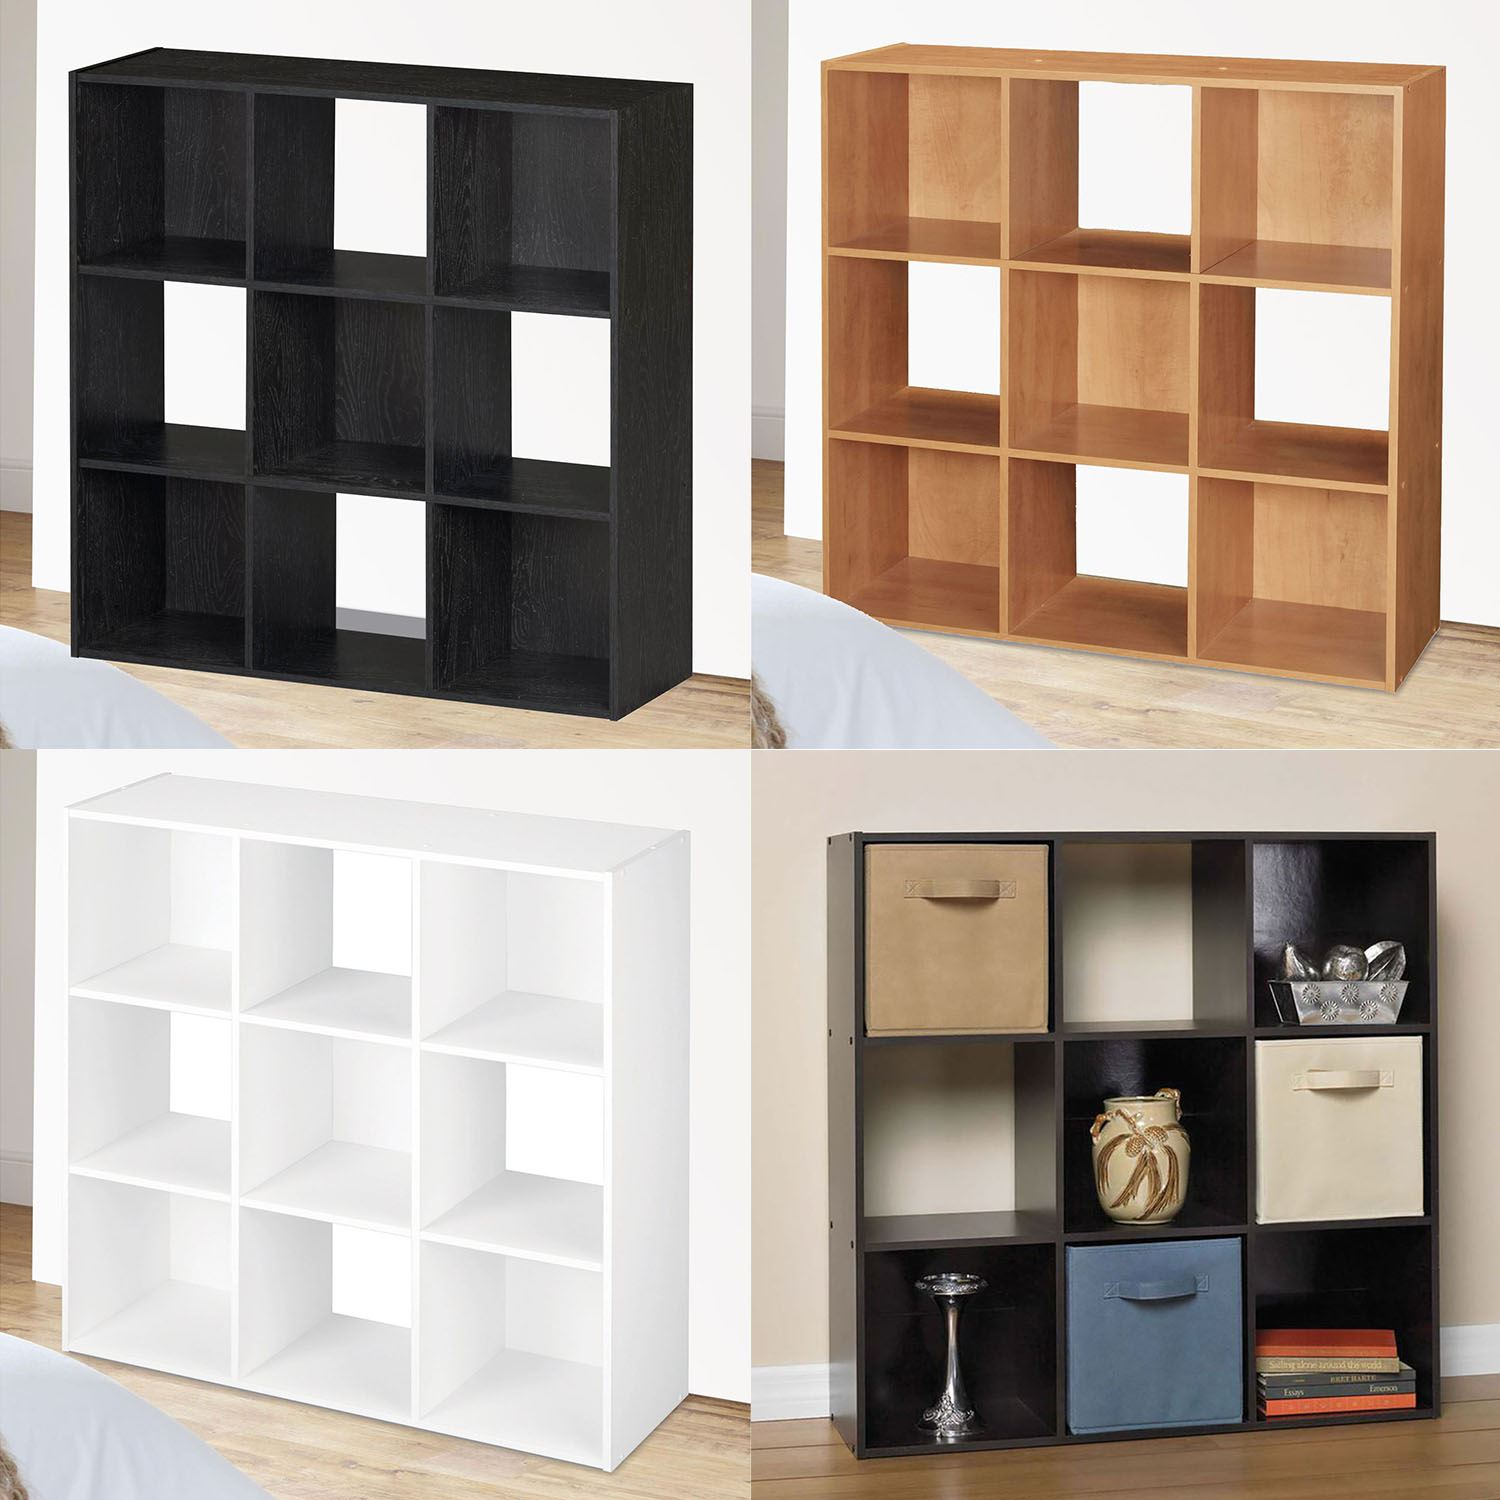 9 Cube Wooden Bookcase Shelving Display Shelves Storage